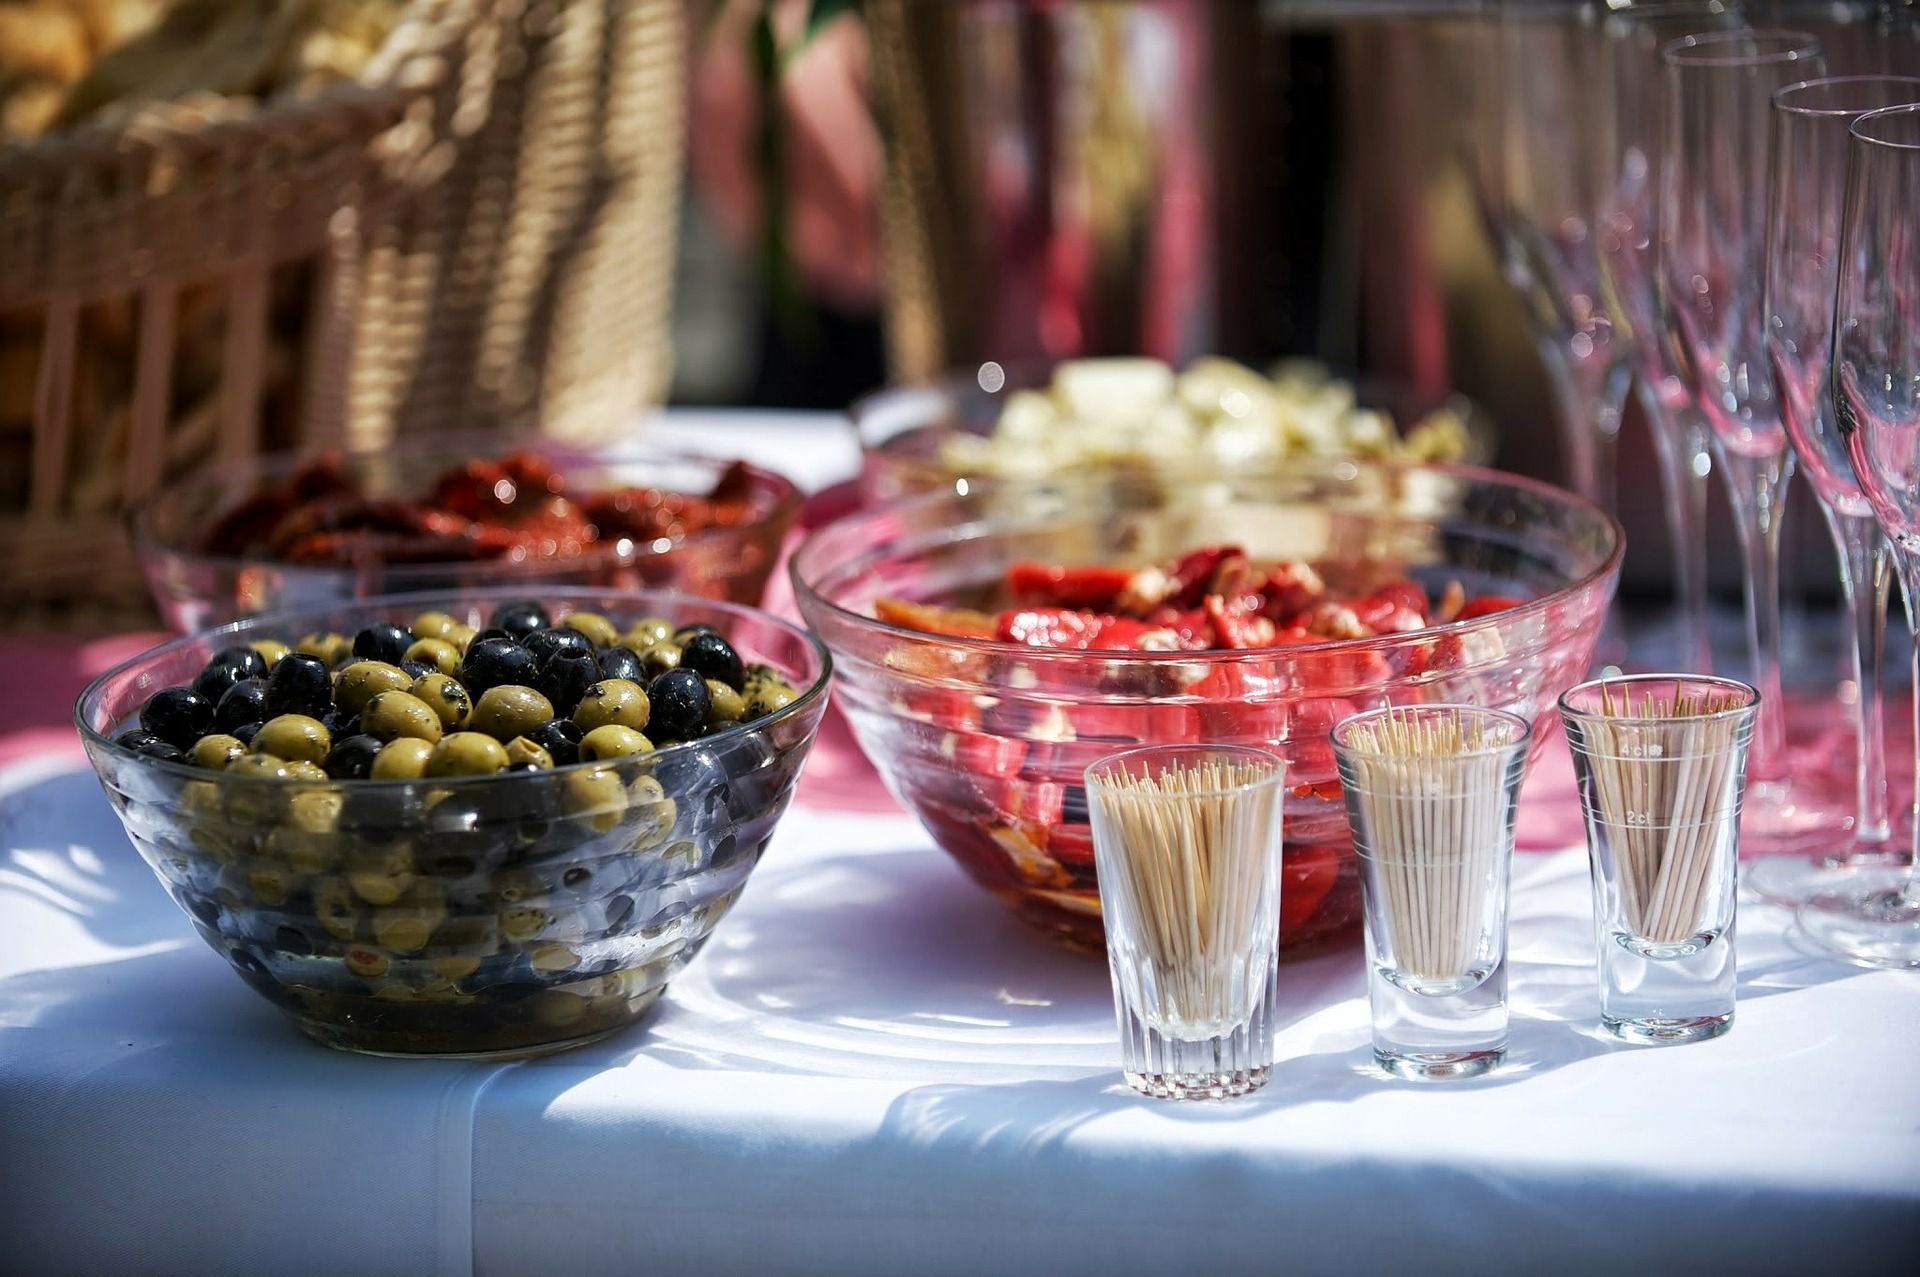 catering-179046_1920